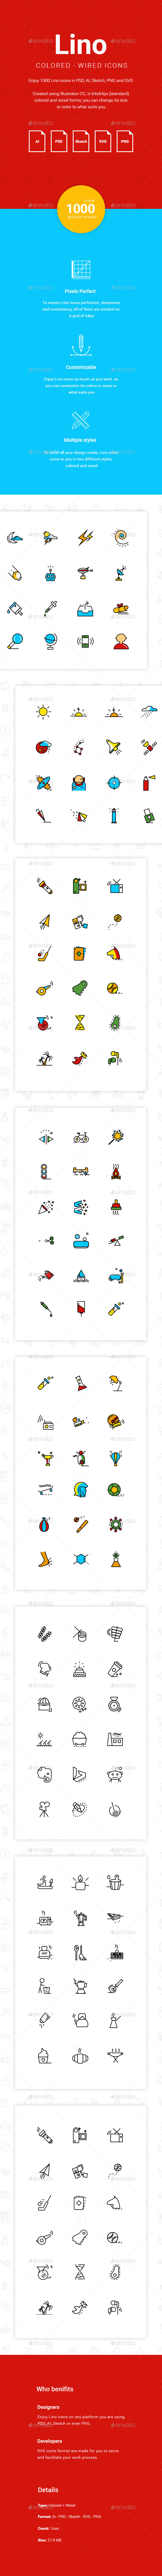 Lino Icons - 1000 Vector Icons - Icons